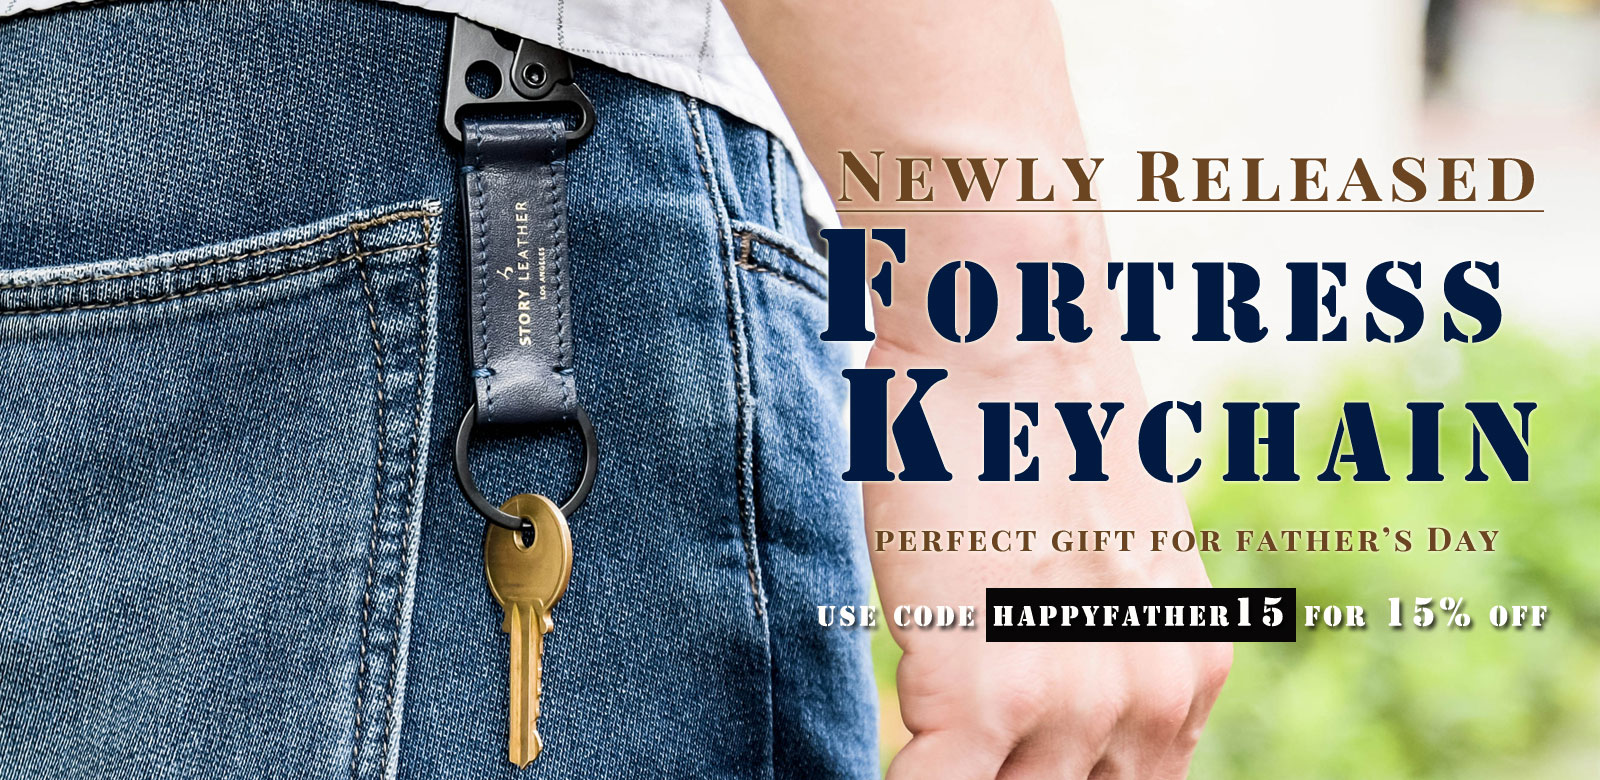 Fortress keychain for Father's Day